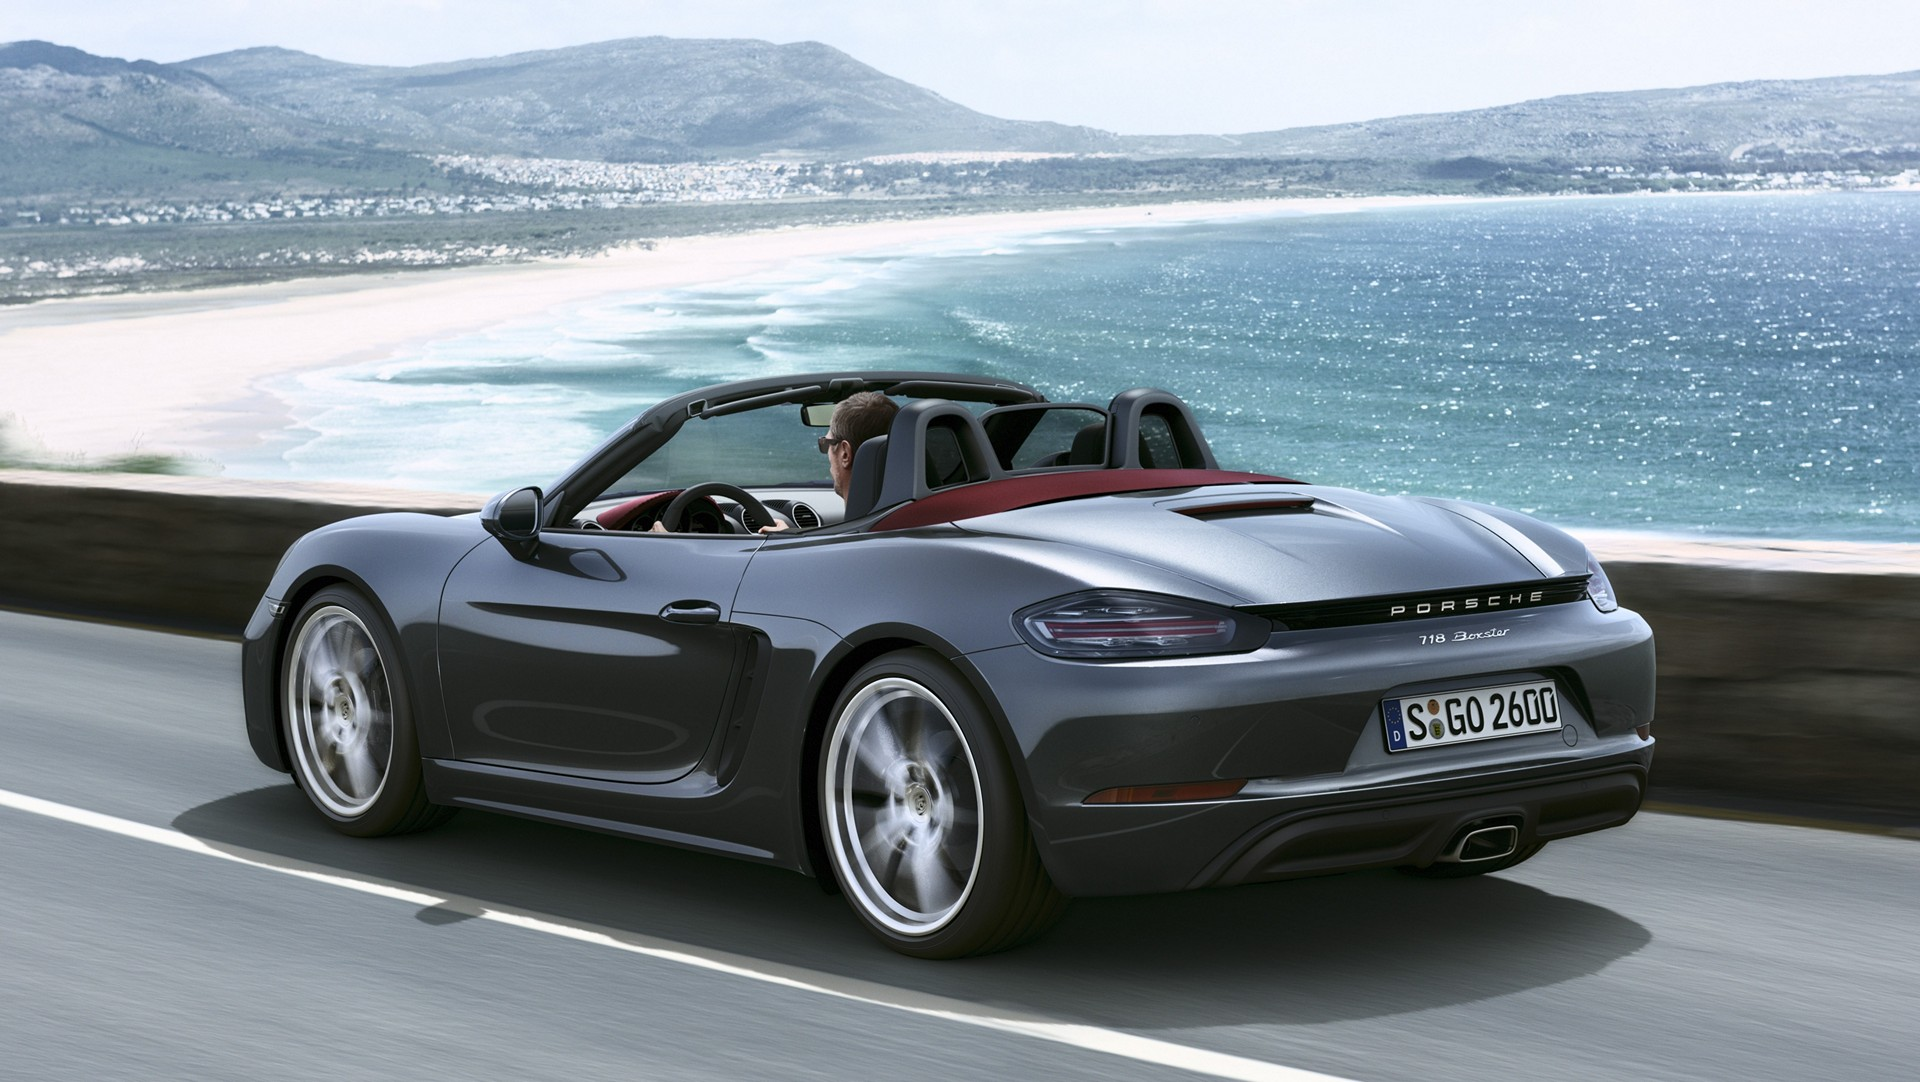 The Brand New Porsche 718 Boxster Carrrs Auto Portal